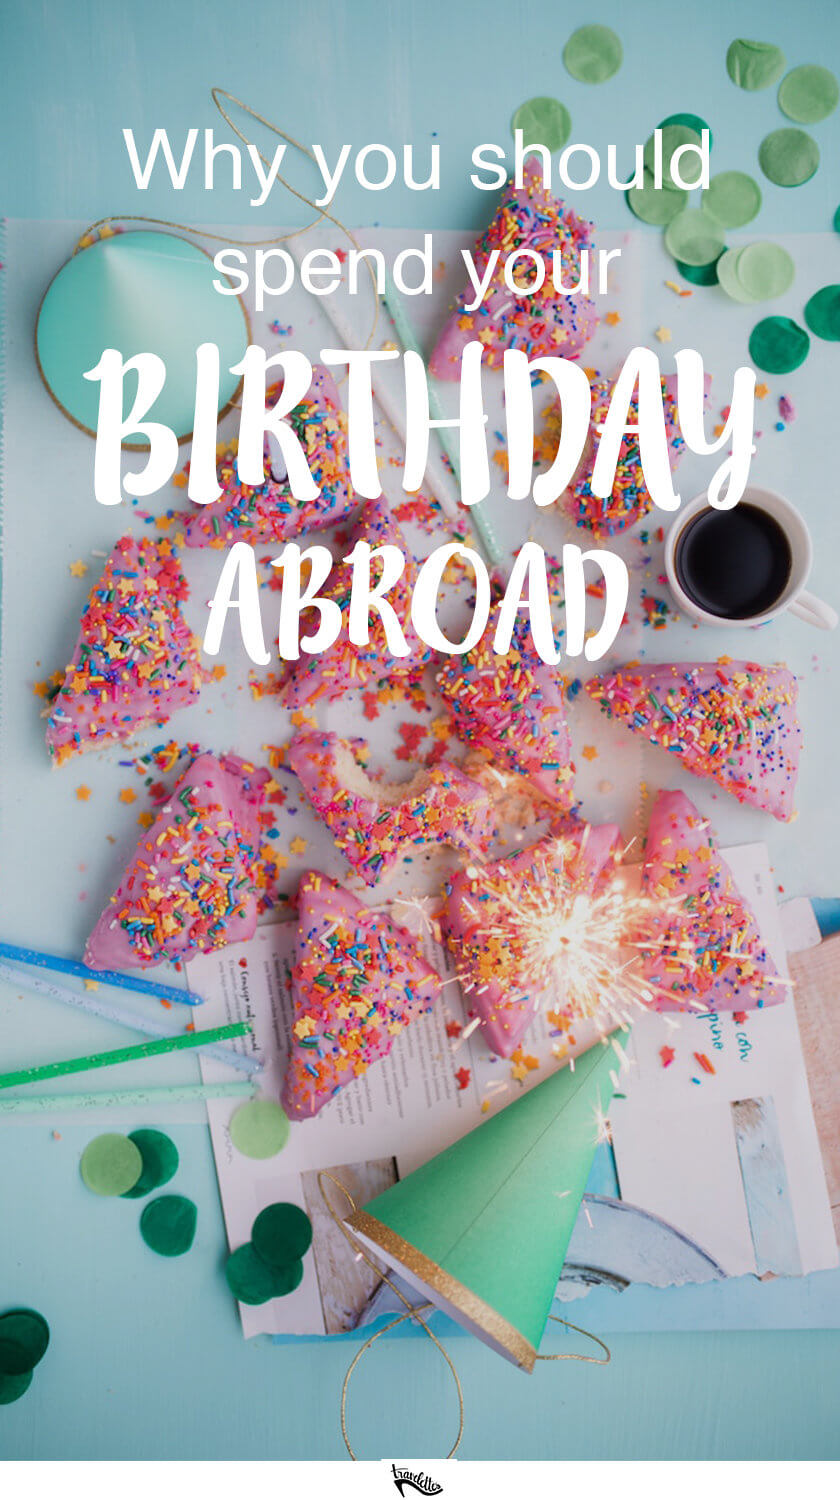 Treat yourself to some me-time and spend your next birthday abroad!